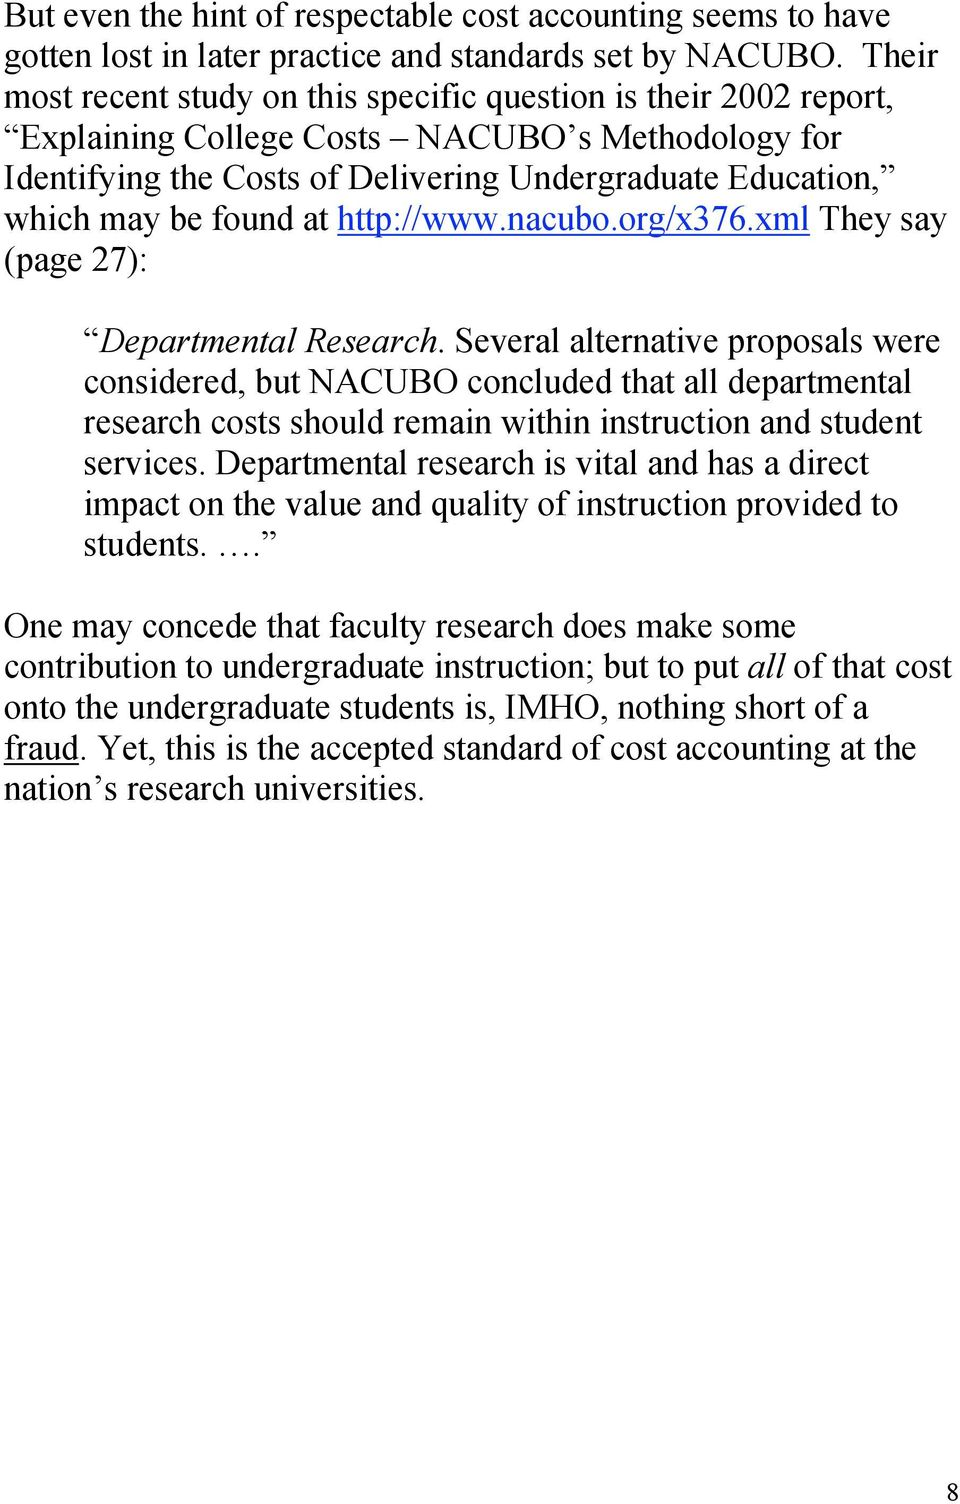 found at http://www.nacubo.org/x376.xml They say (page 27): Departmental Research.